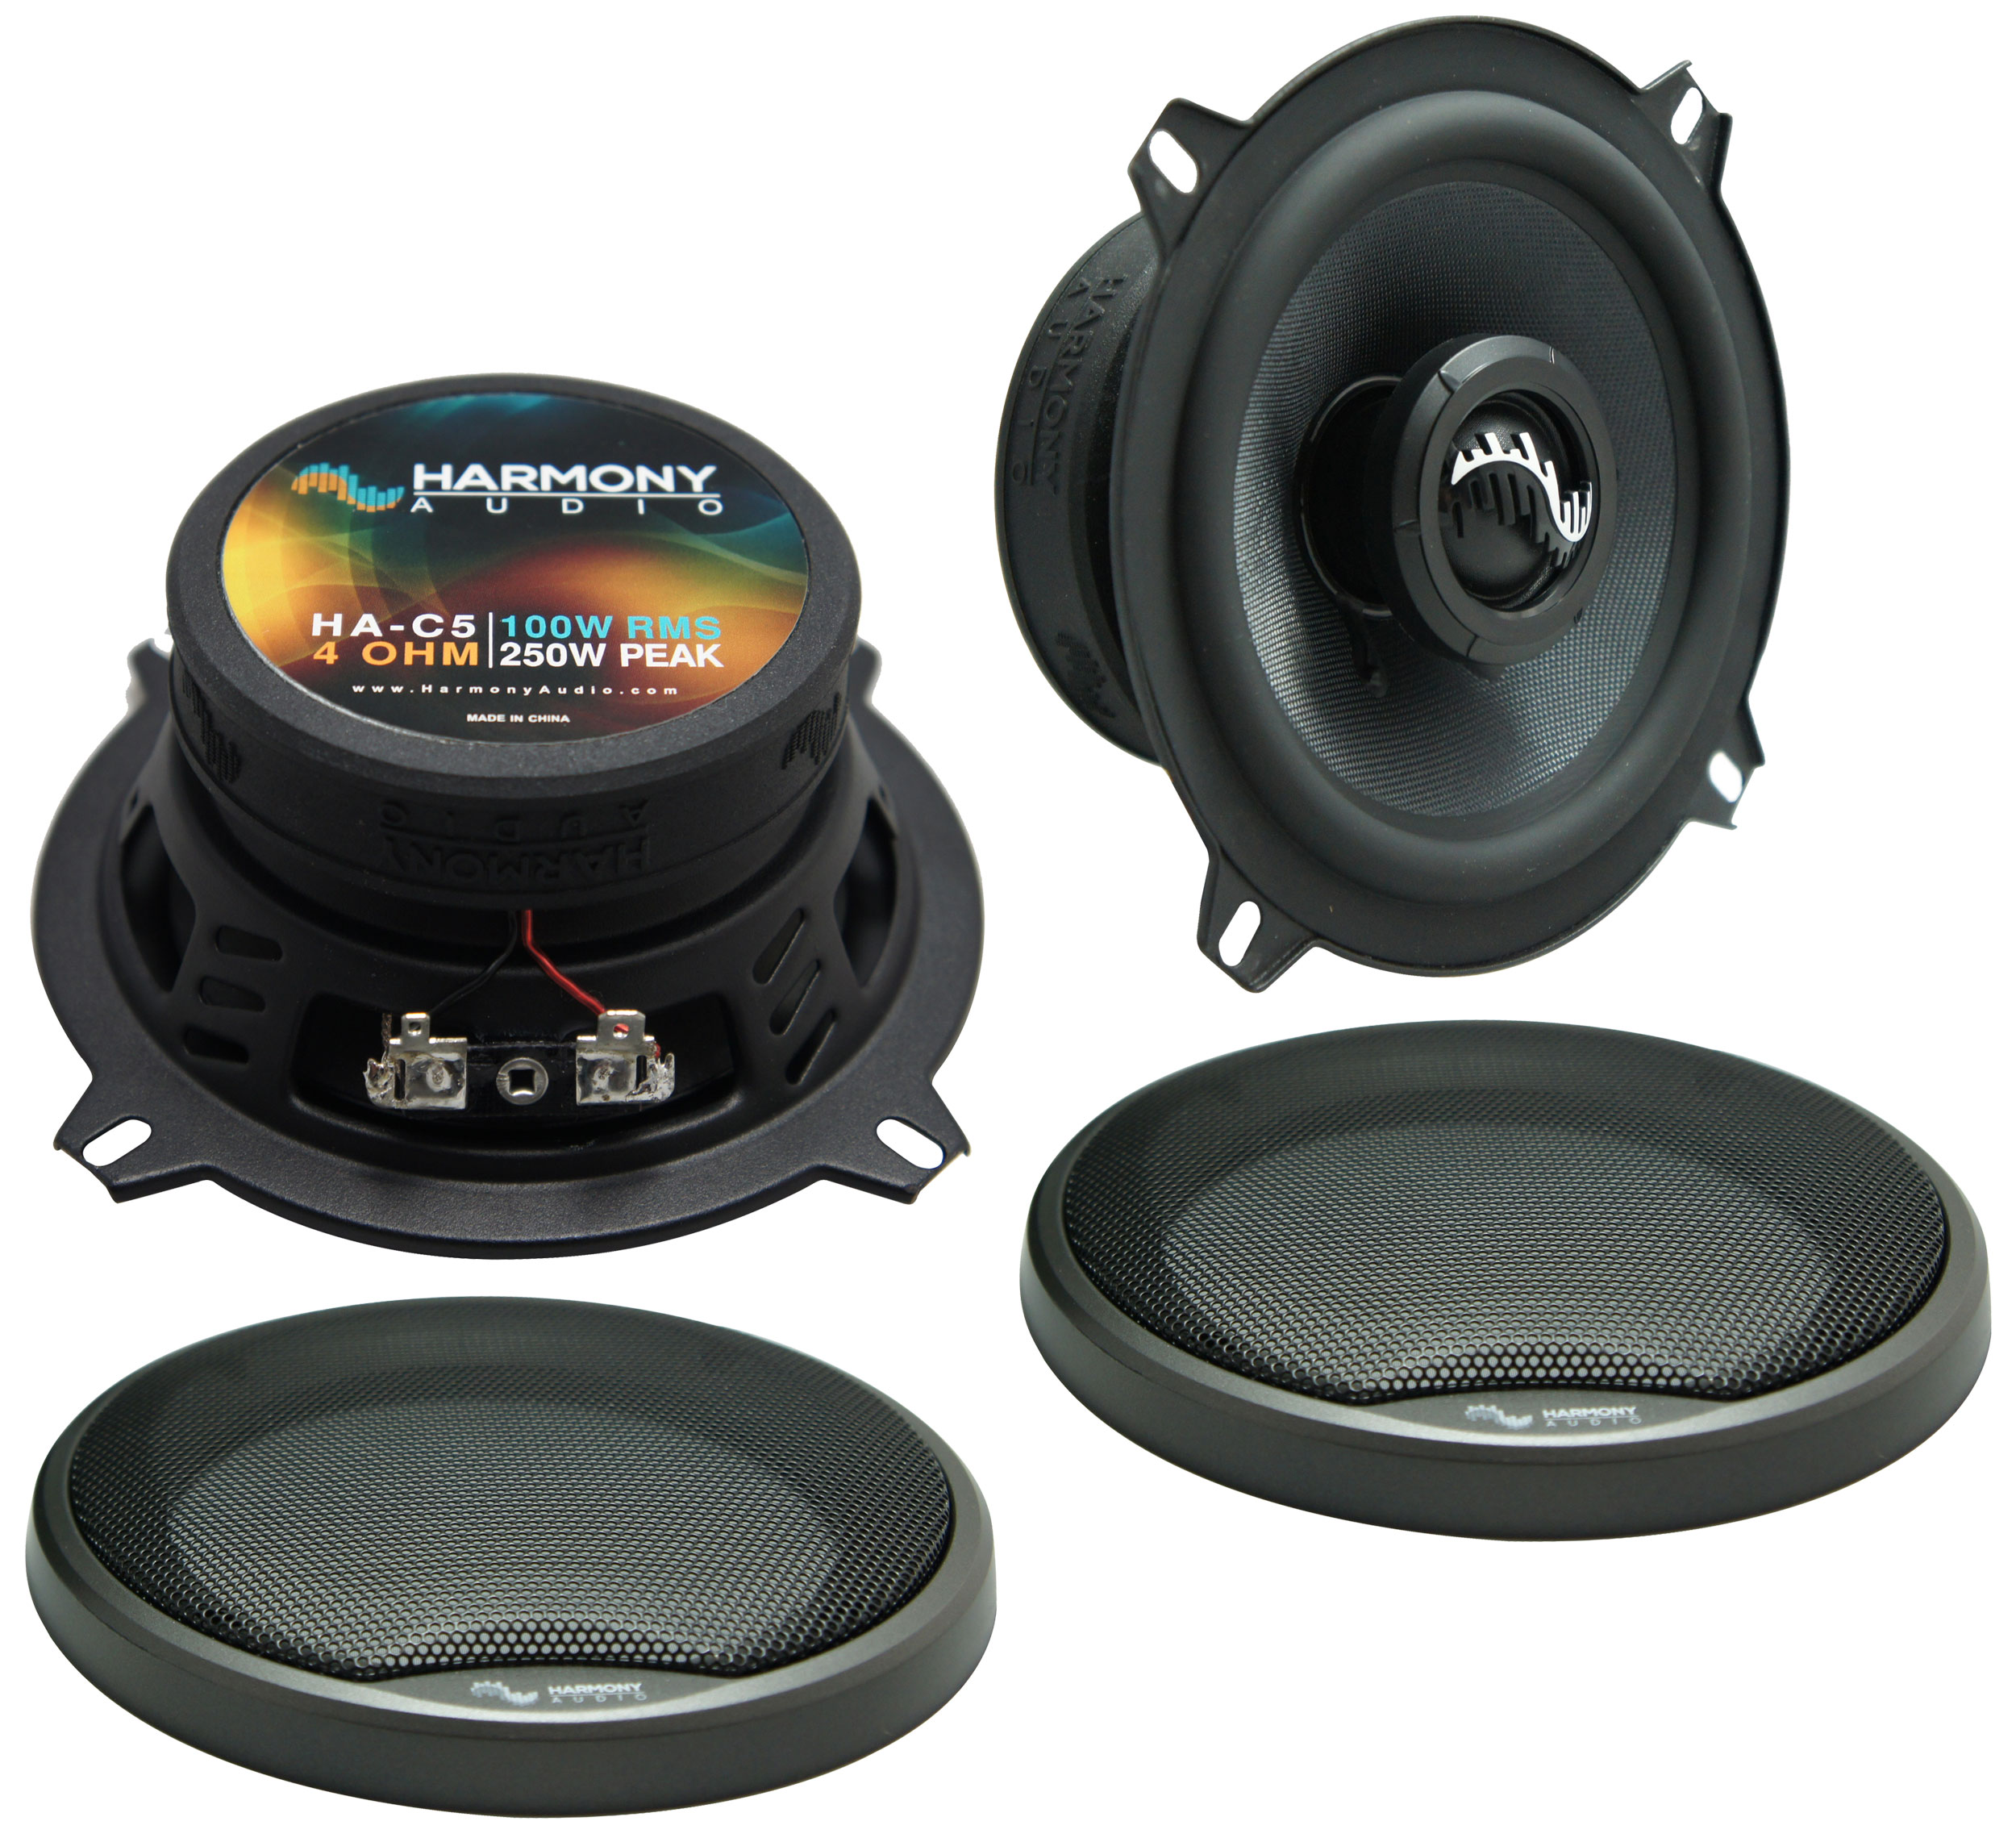 Fits BMW 7 Series 1990-2017 Rear Deck Replacement Harmony HA-C65 Premium Speakers New